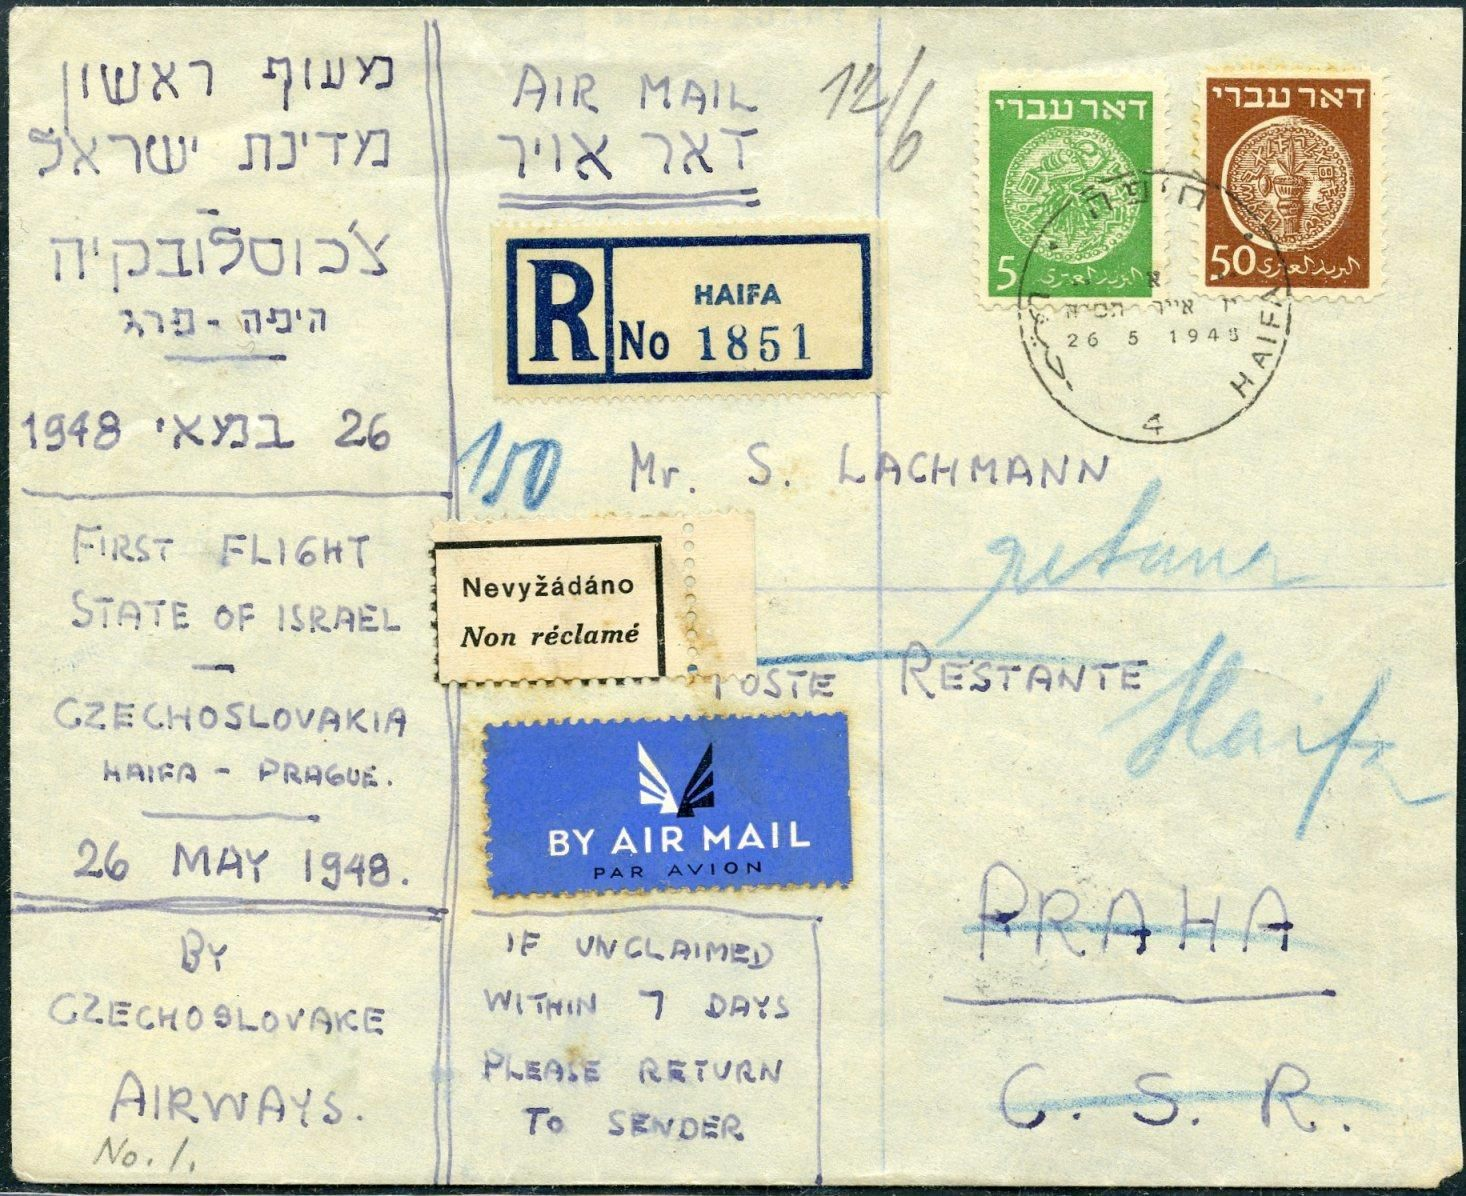 FIRST FLIGHTS Israel Czechoslovakia 26.5.48 by the